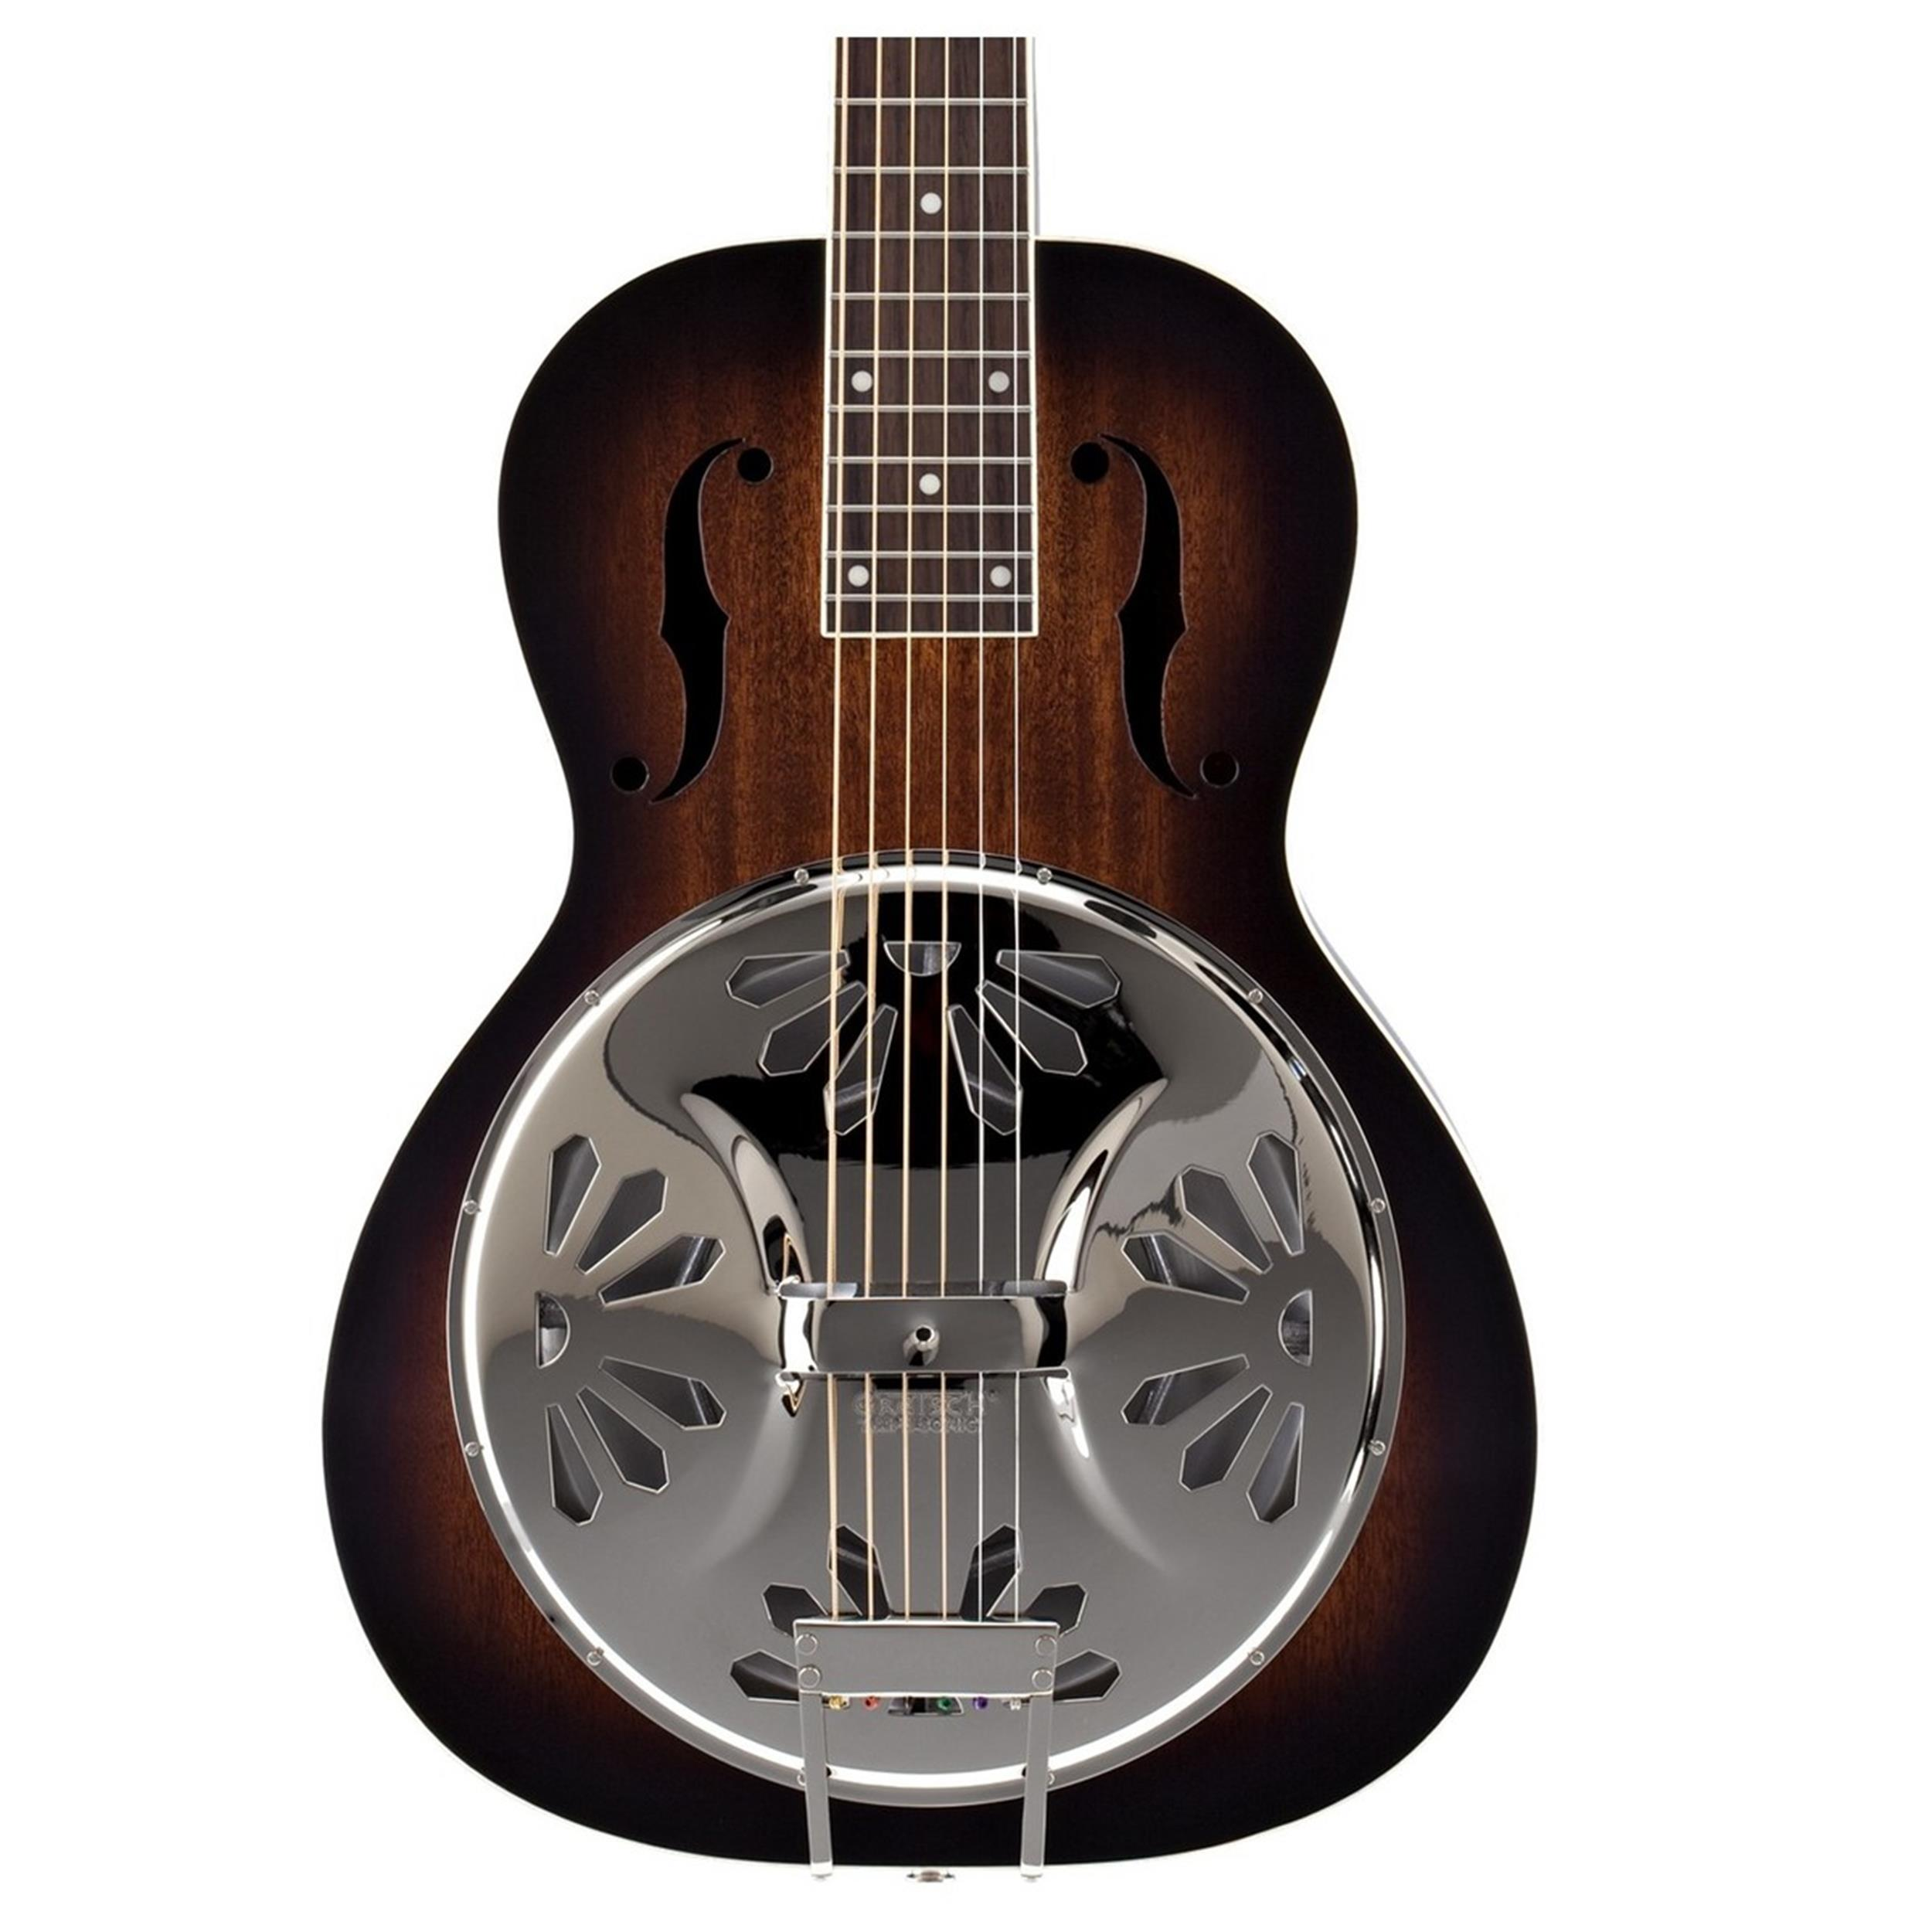 GRETSCH G9230 BOBTAIL DELUXE RESONATOR SQUARE NECK SNB MH - 2716020503